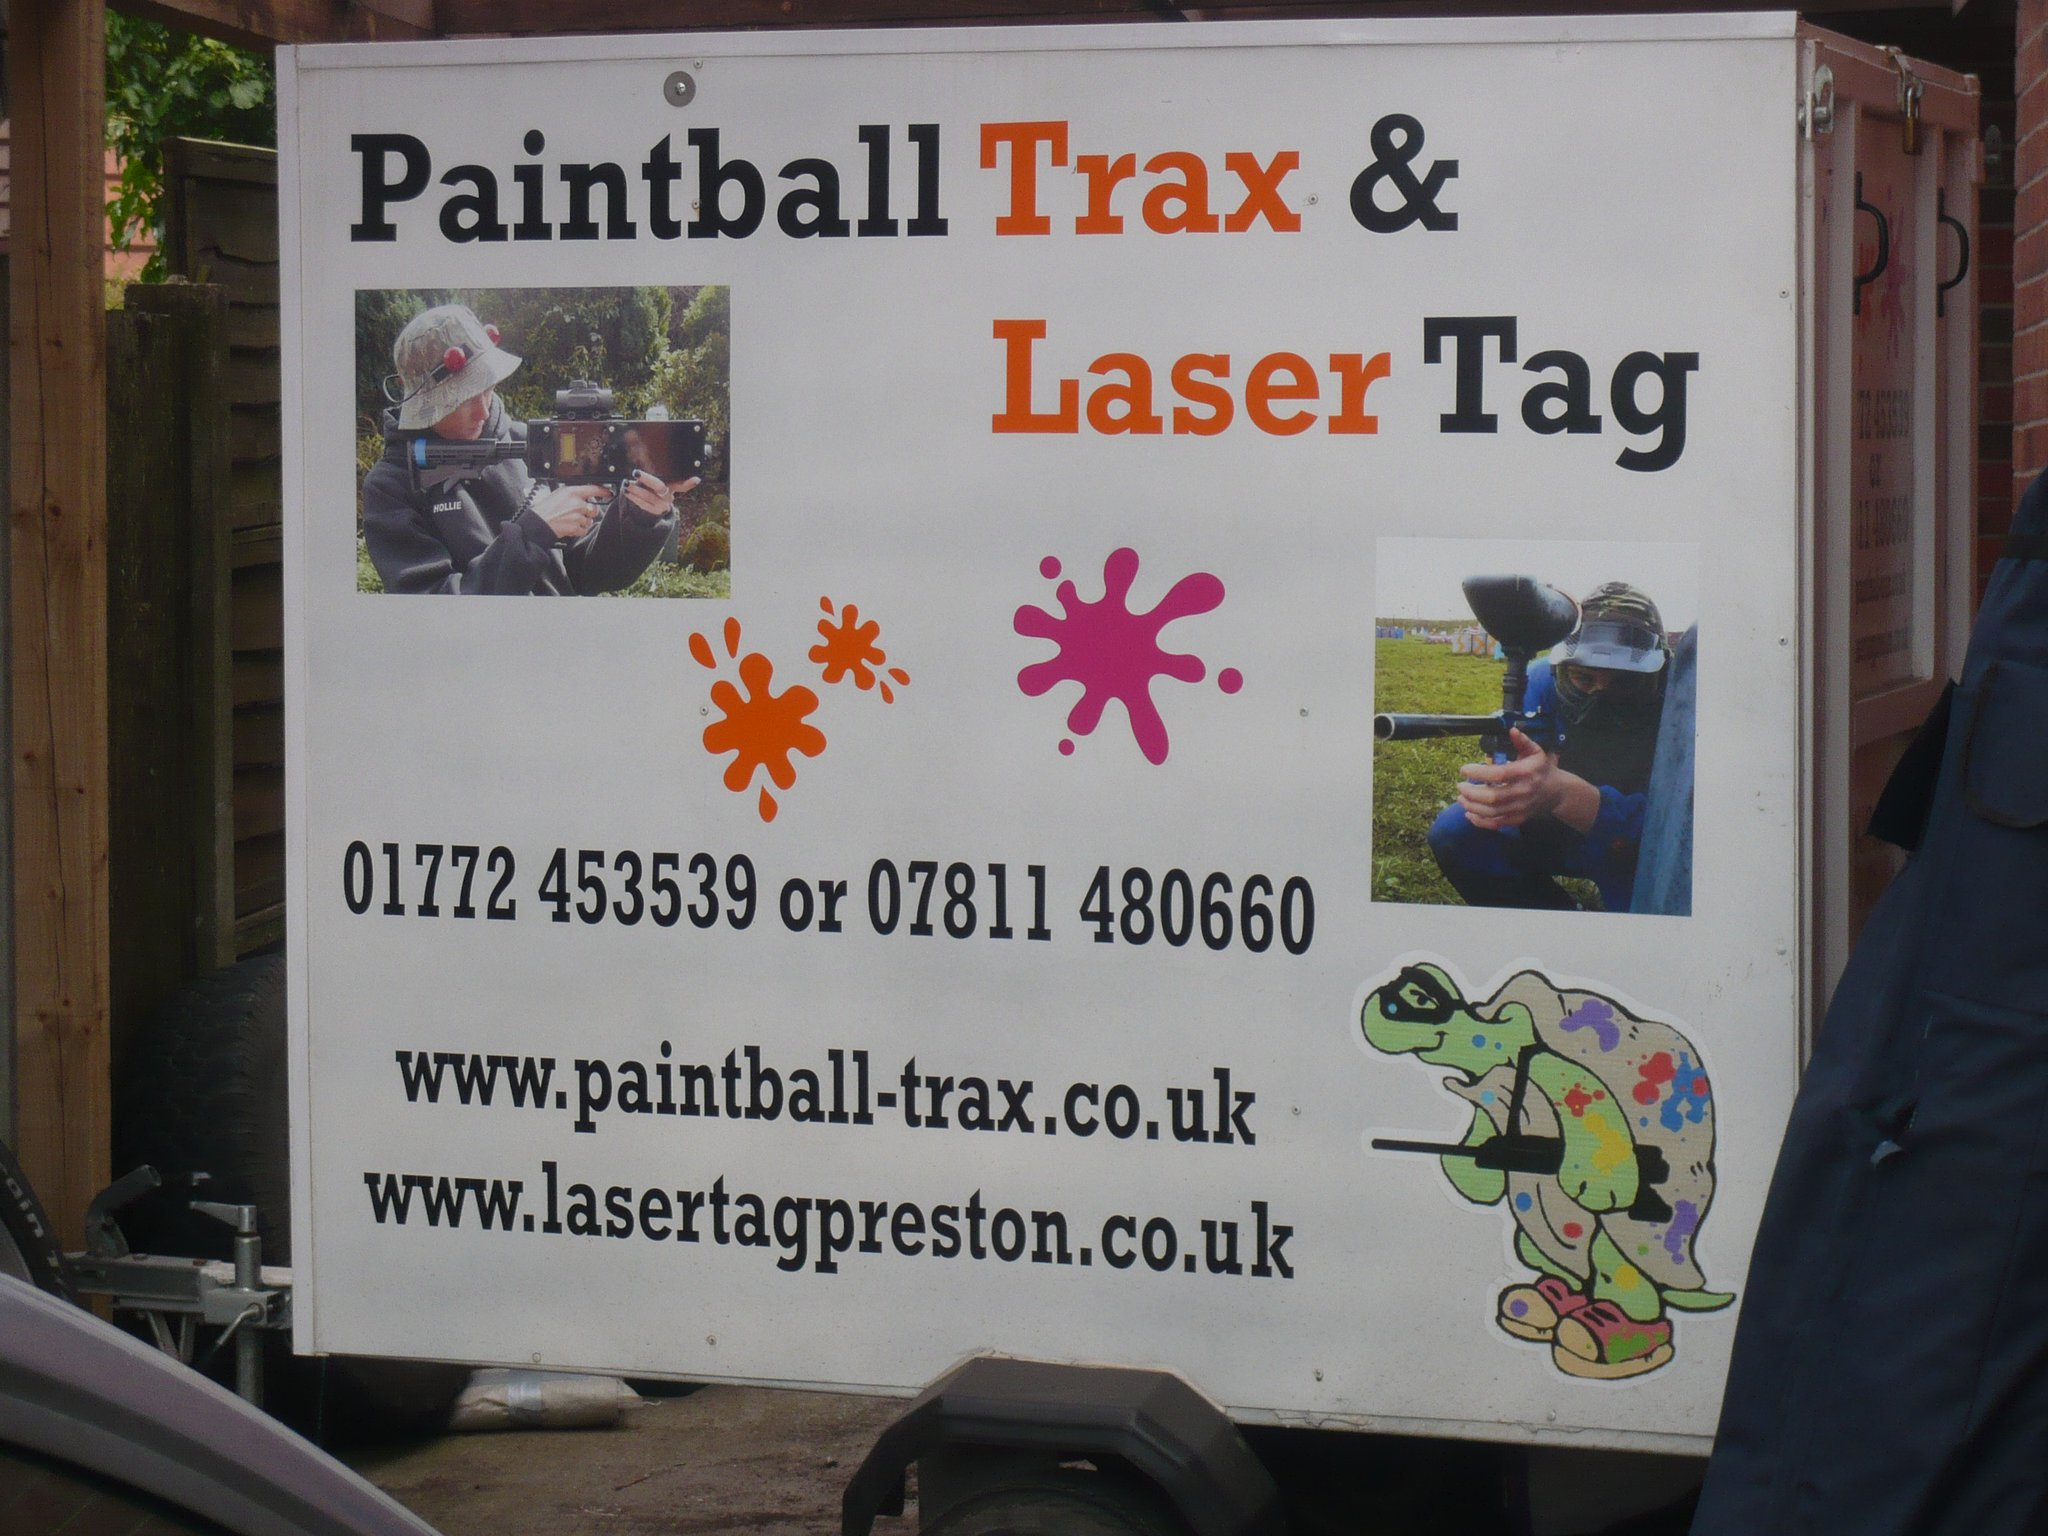 Paintball Trax and LaserTag Archery Rifle Range Midge Hall Lane Leyland Google Maps